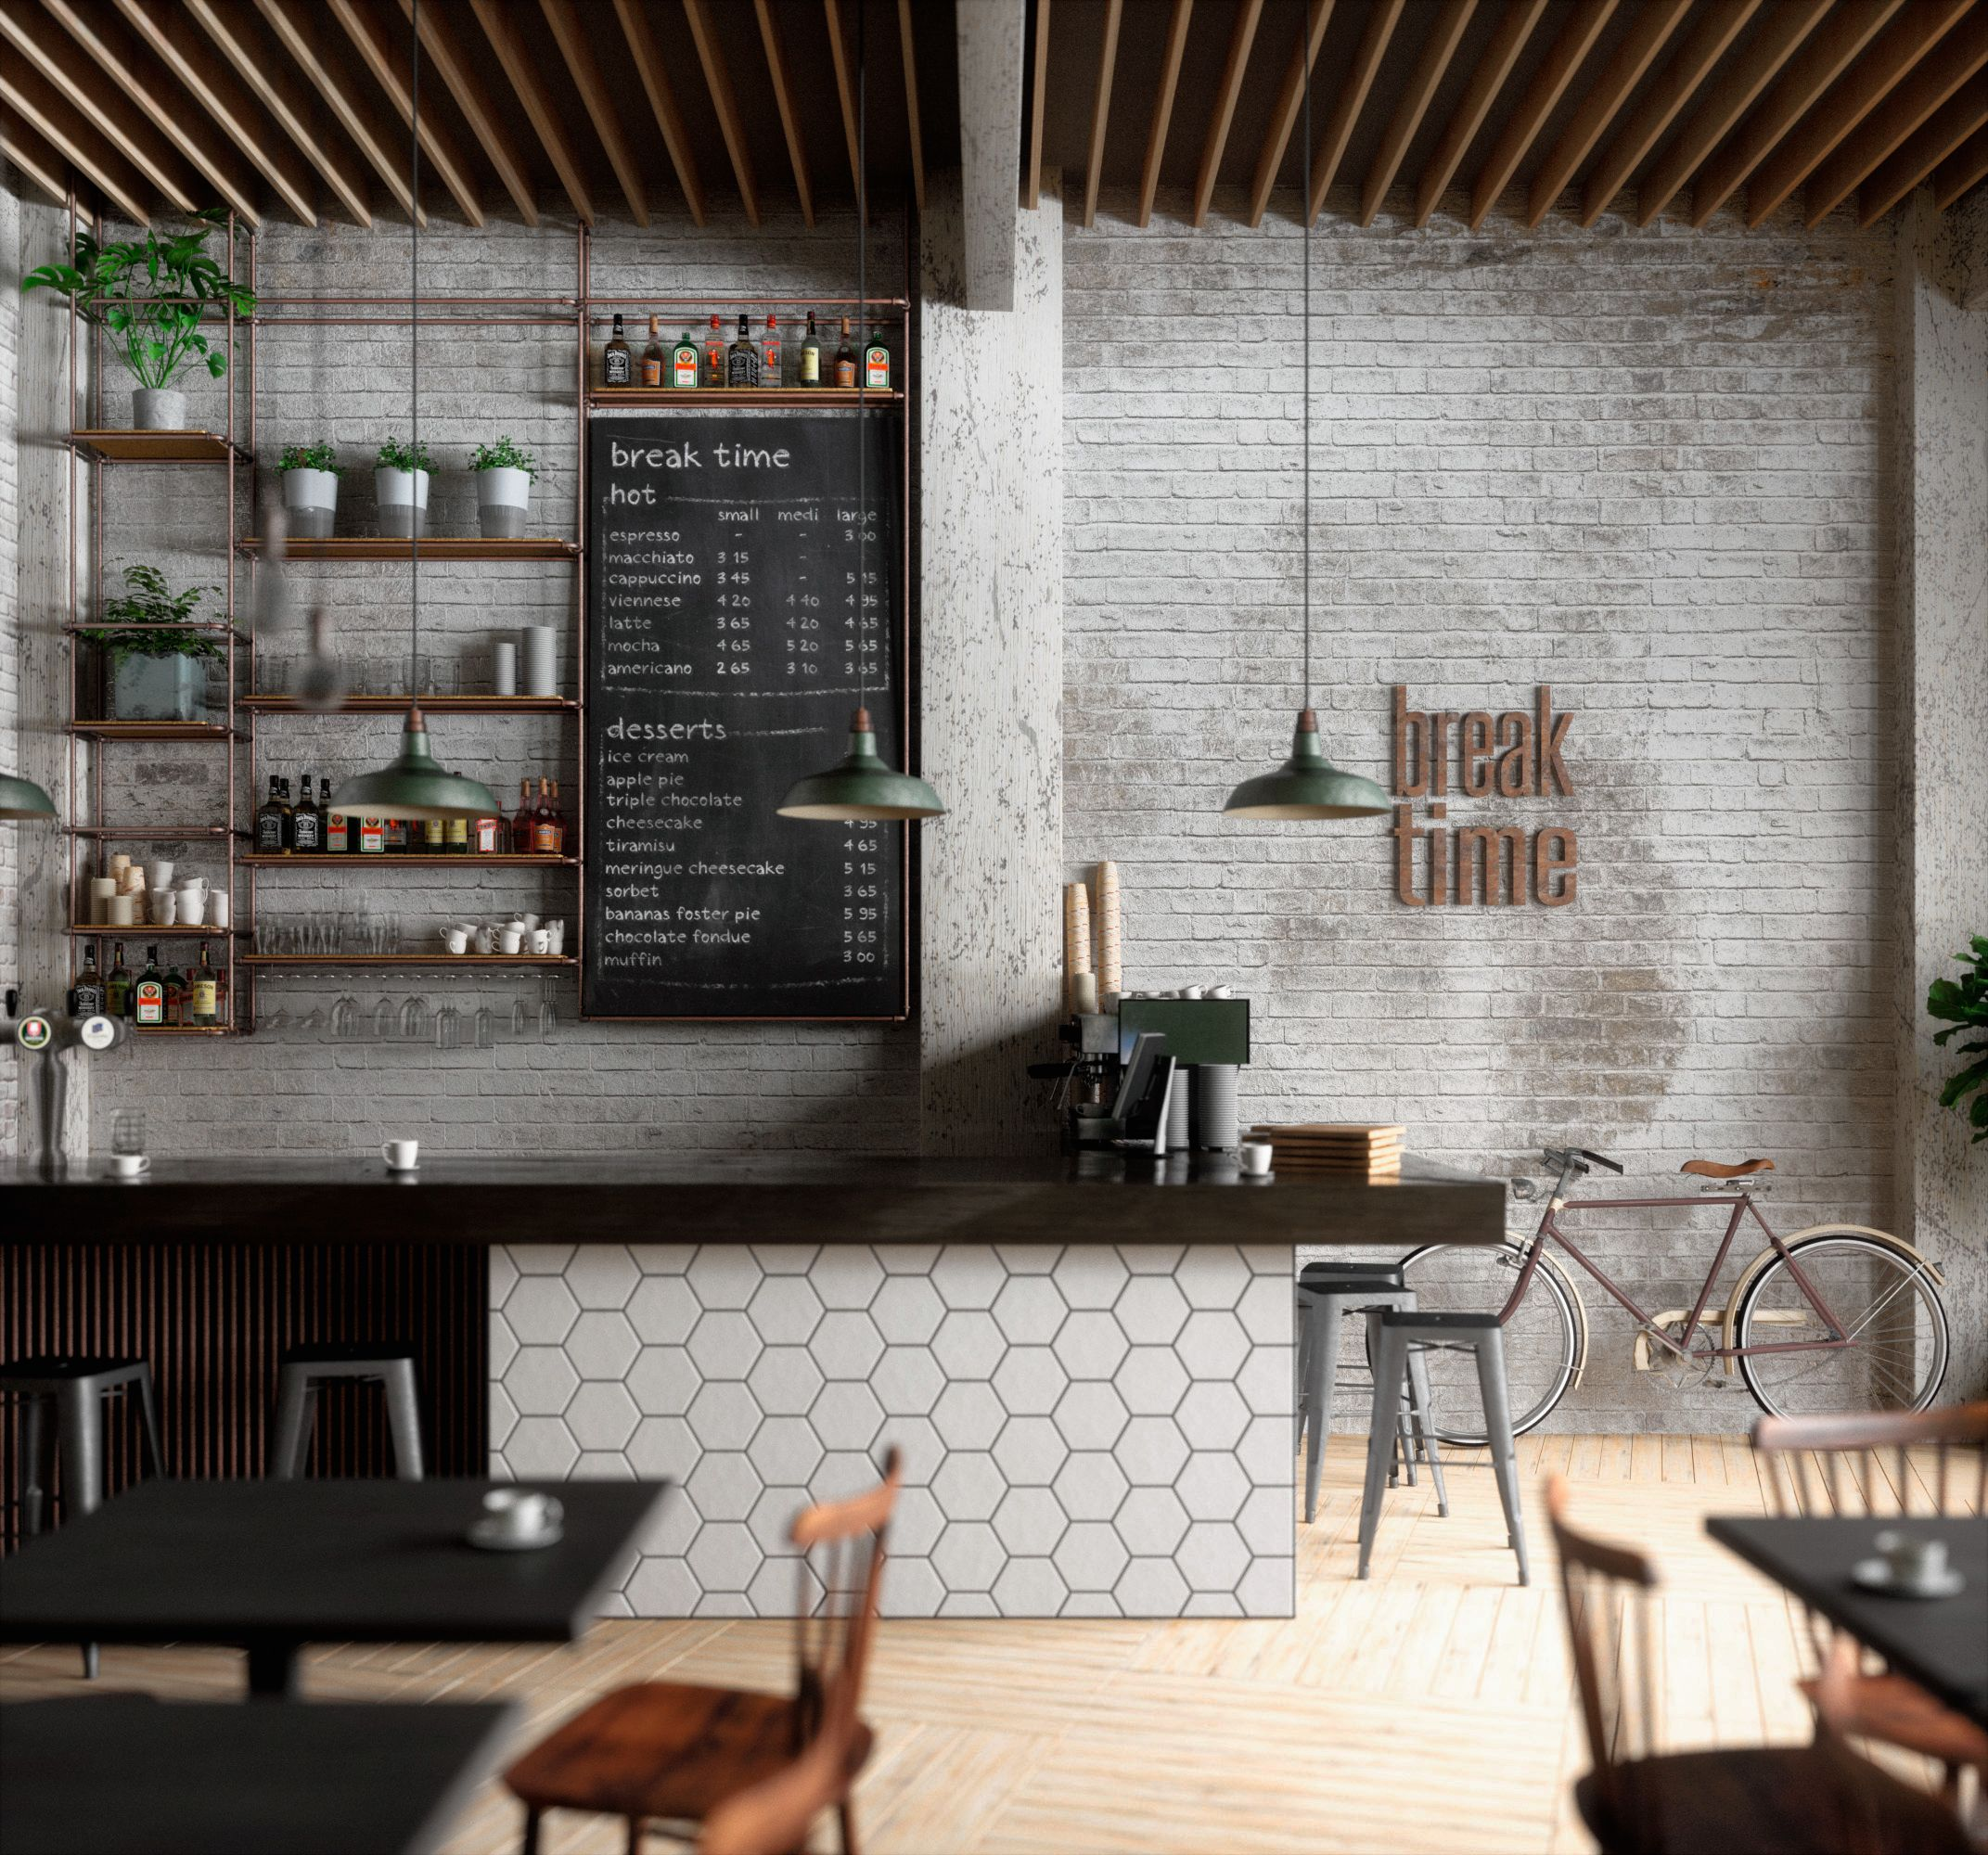 design for a coffee shop in london | restaurant design ideas